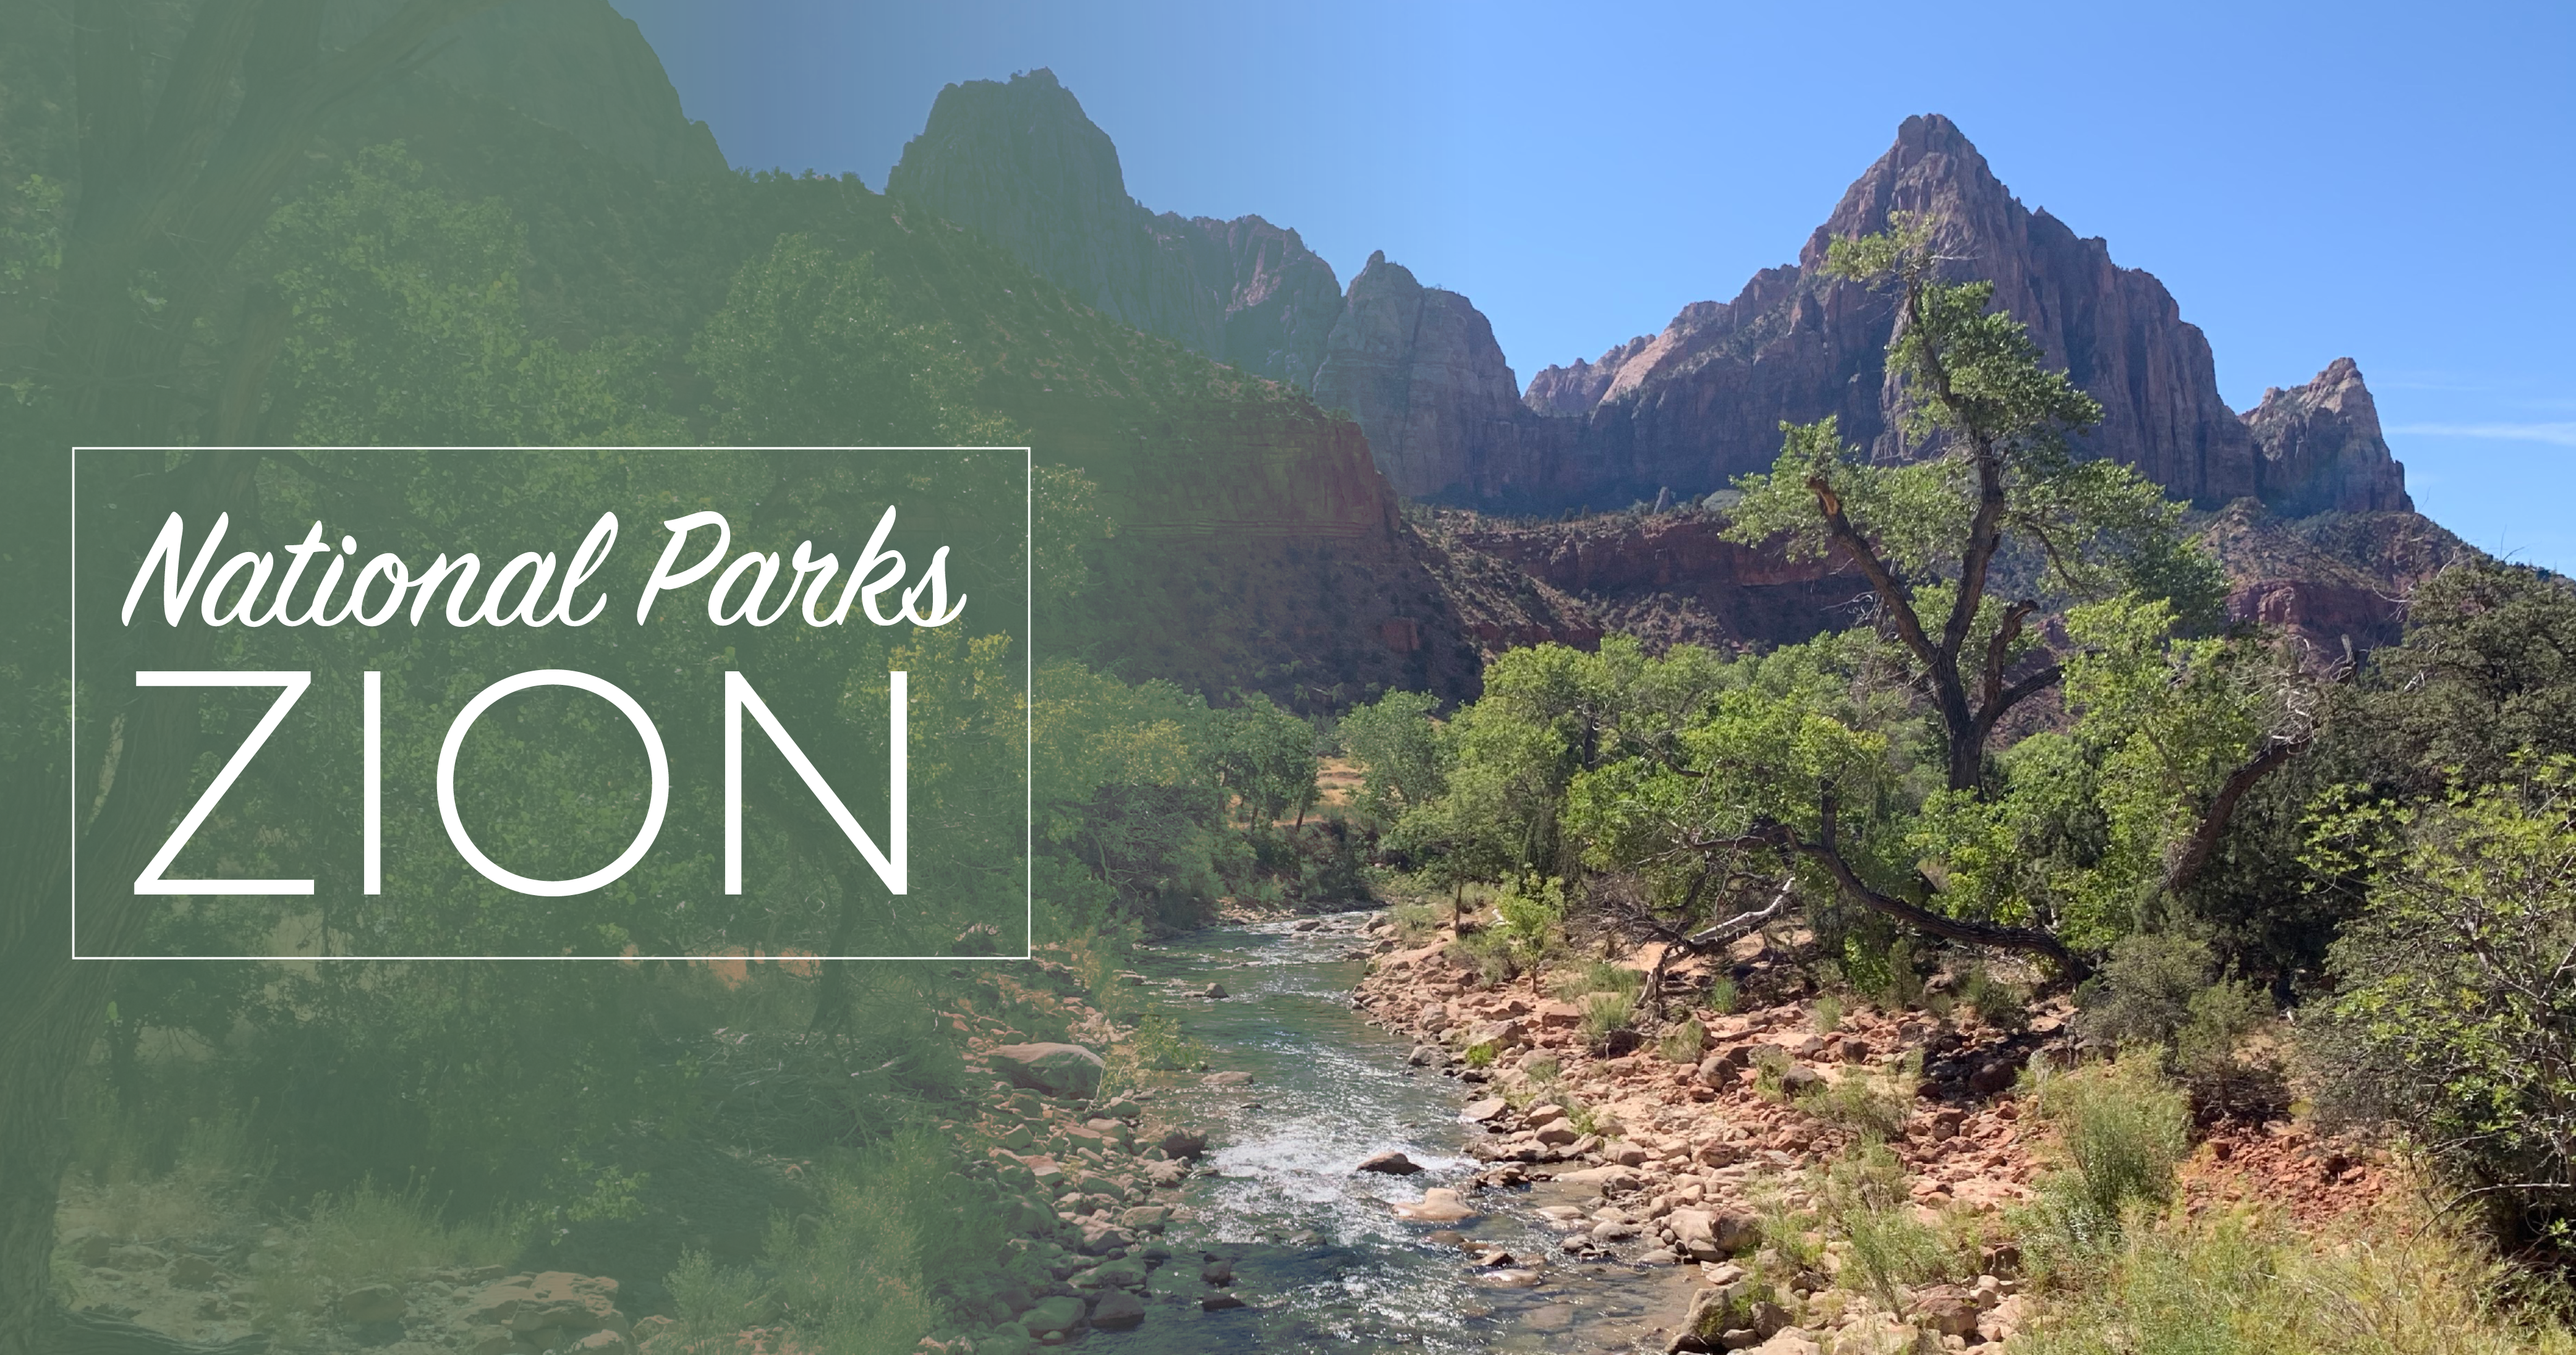 Zion National Park: A Geological and Spiritual Paradise